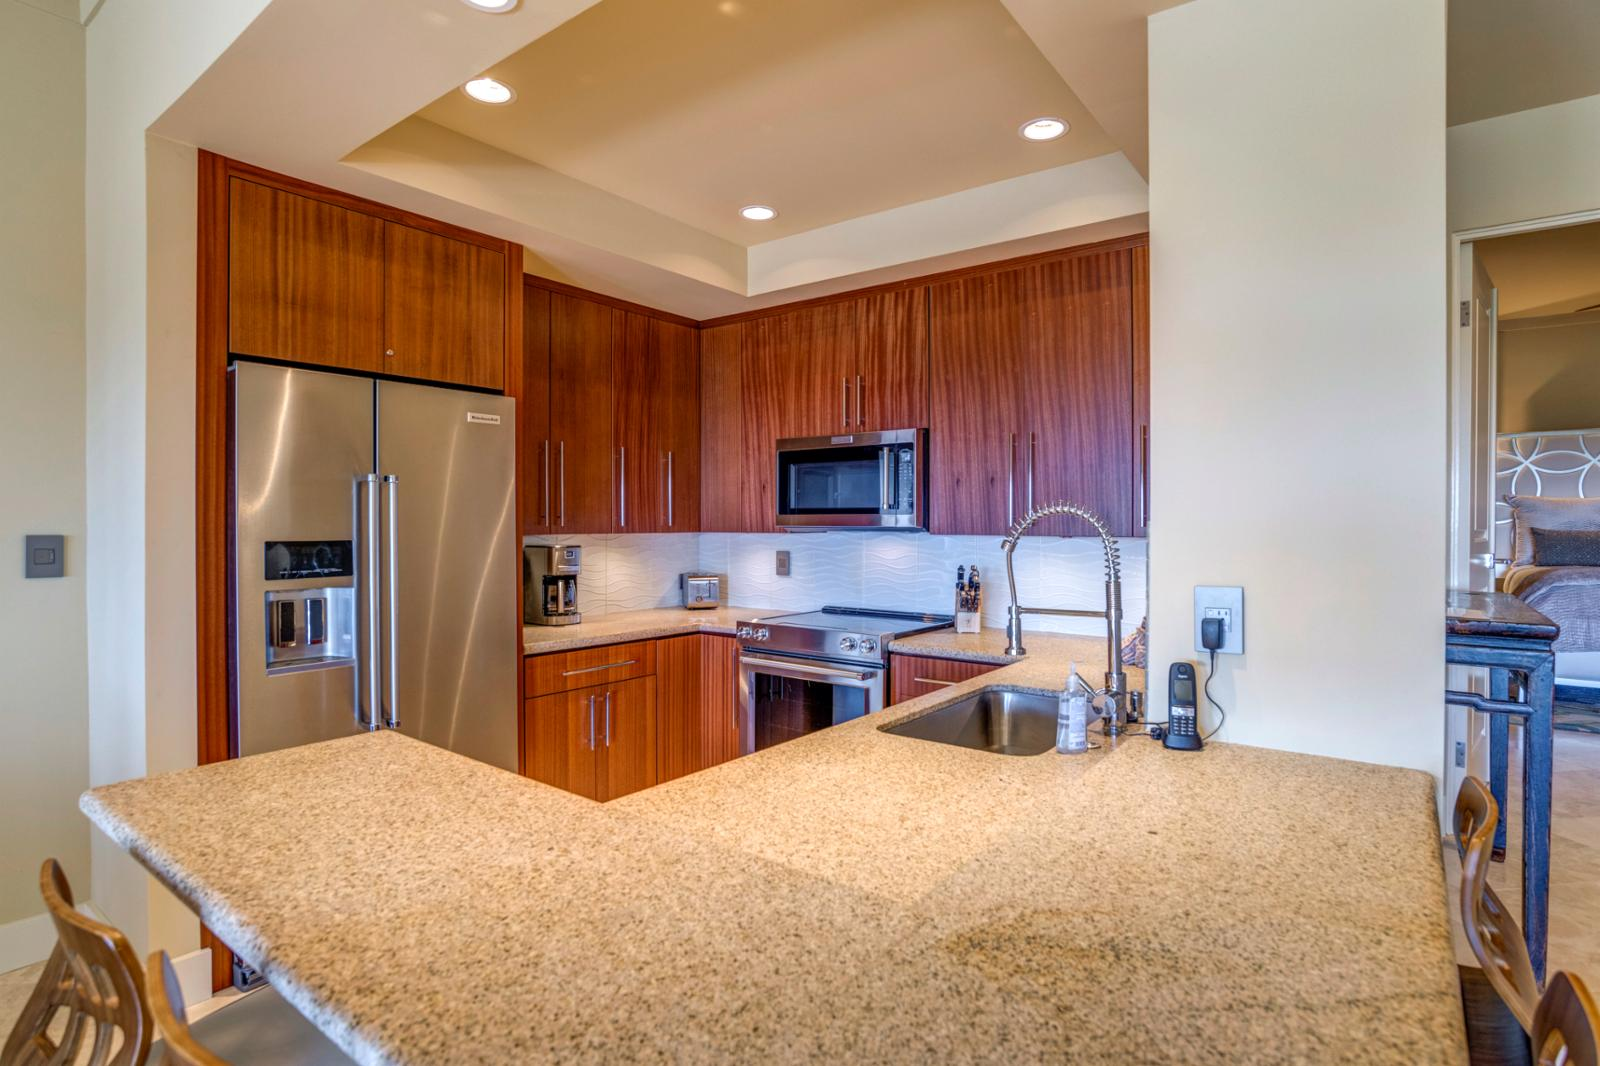 Entry, new countertops and fresh paint, stainless appliances